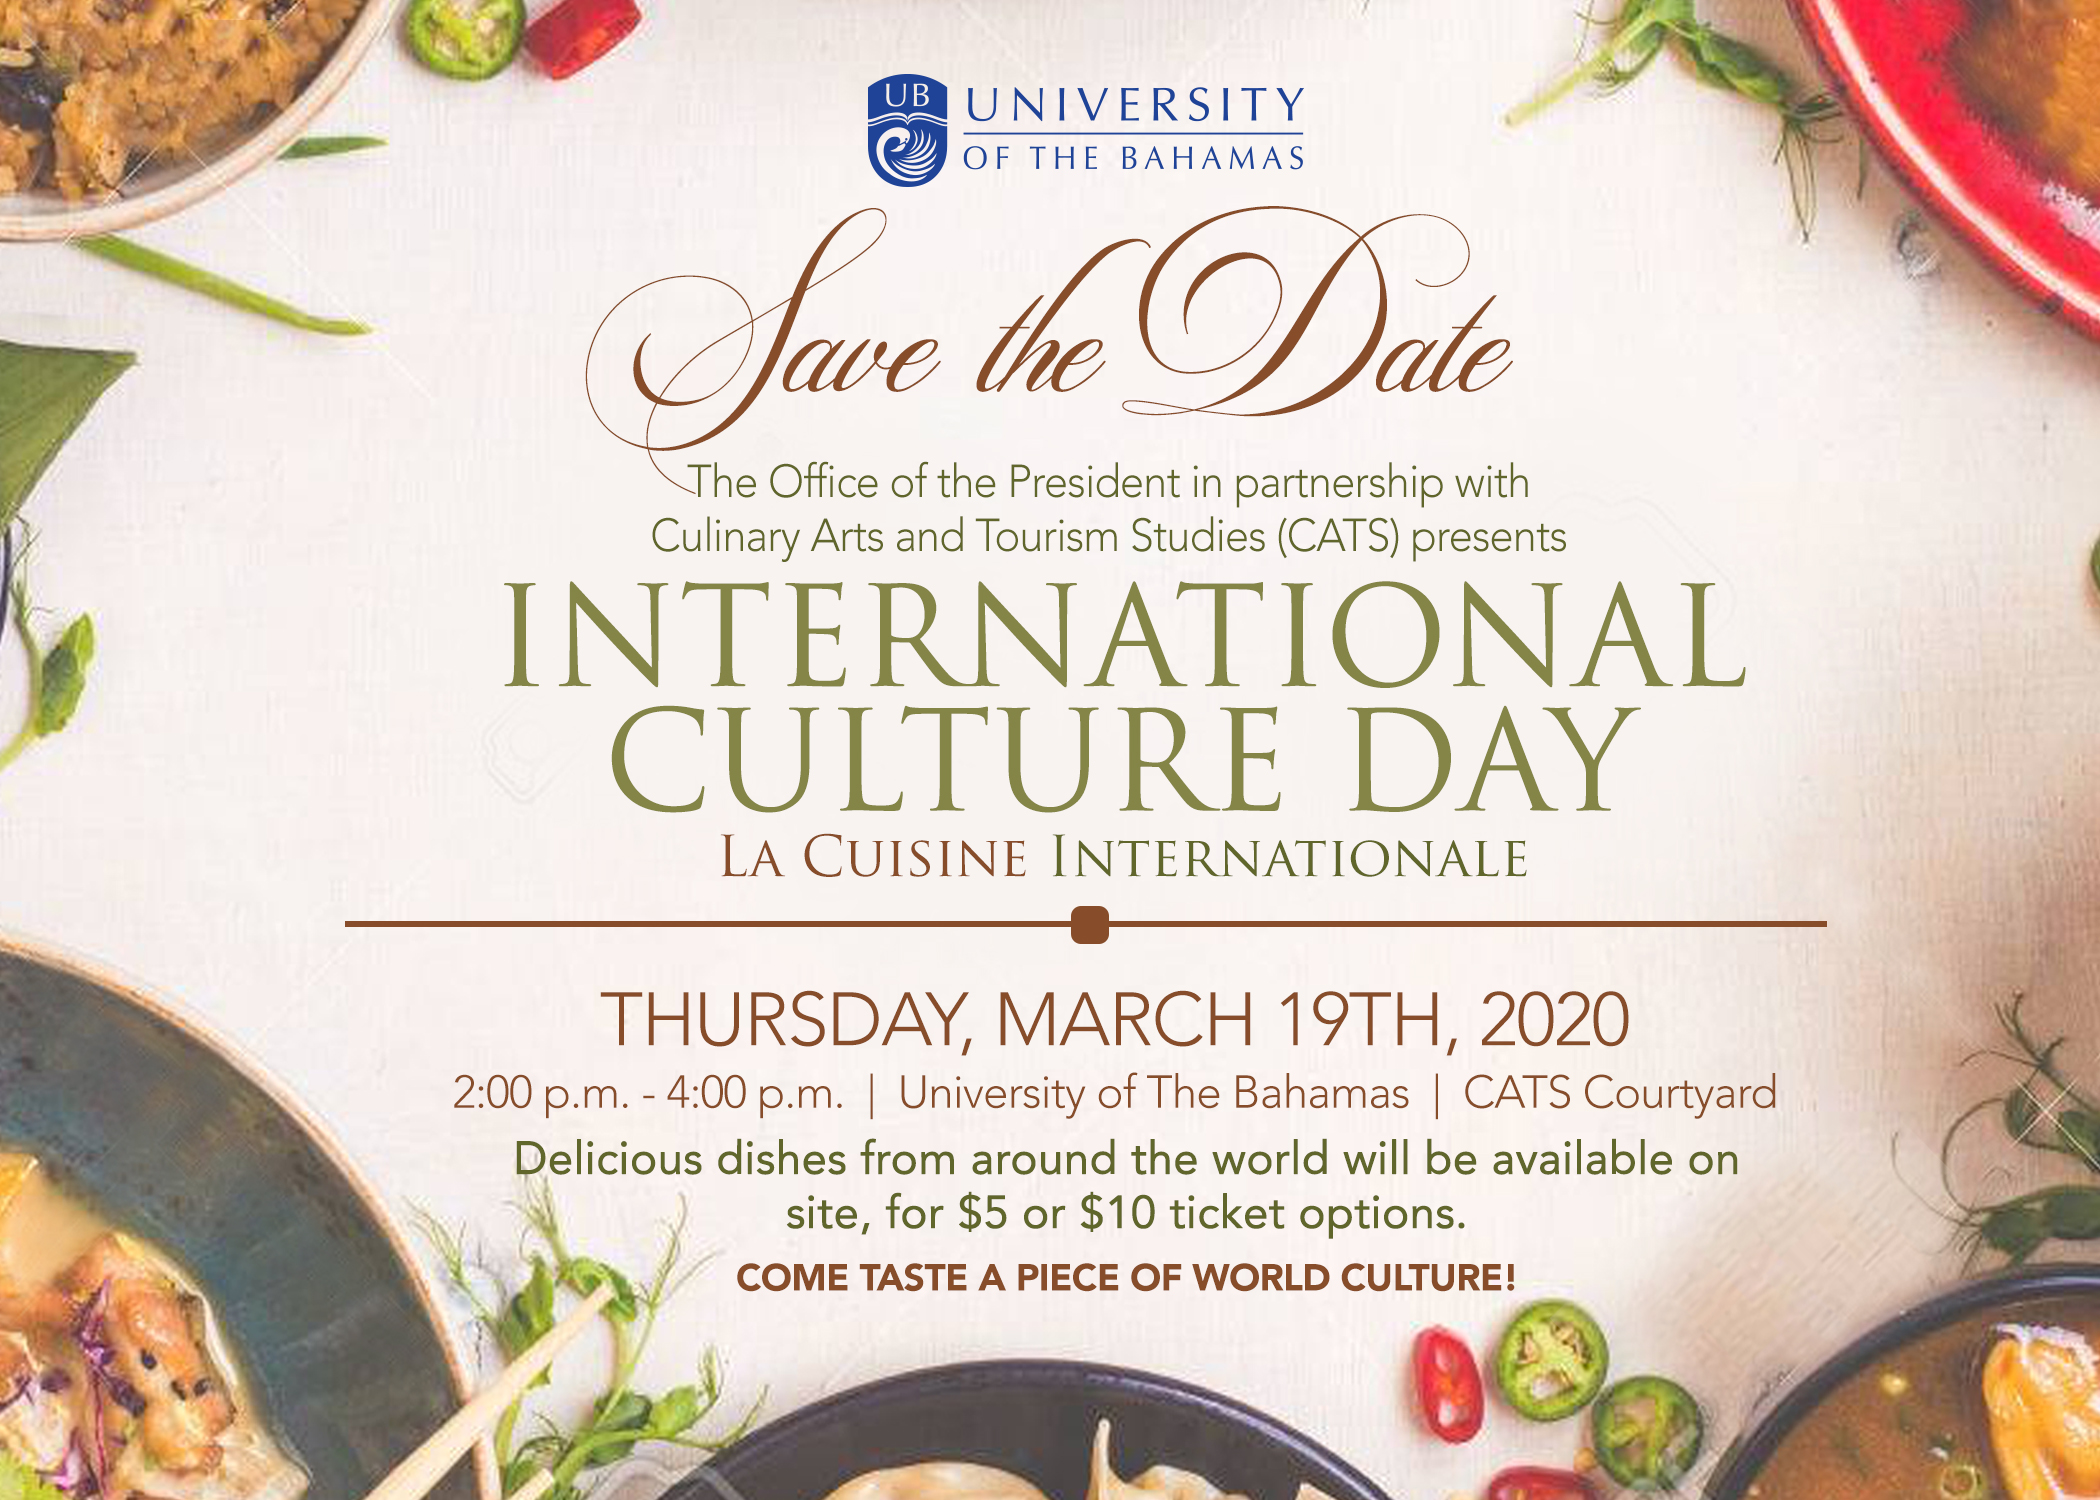 Experience the tastes of the world as UB culinary students take us on an exciting food journey with an assortment of international cuisine.